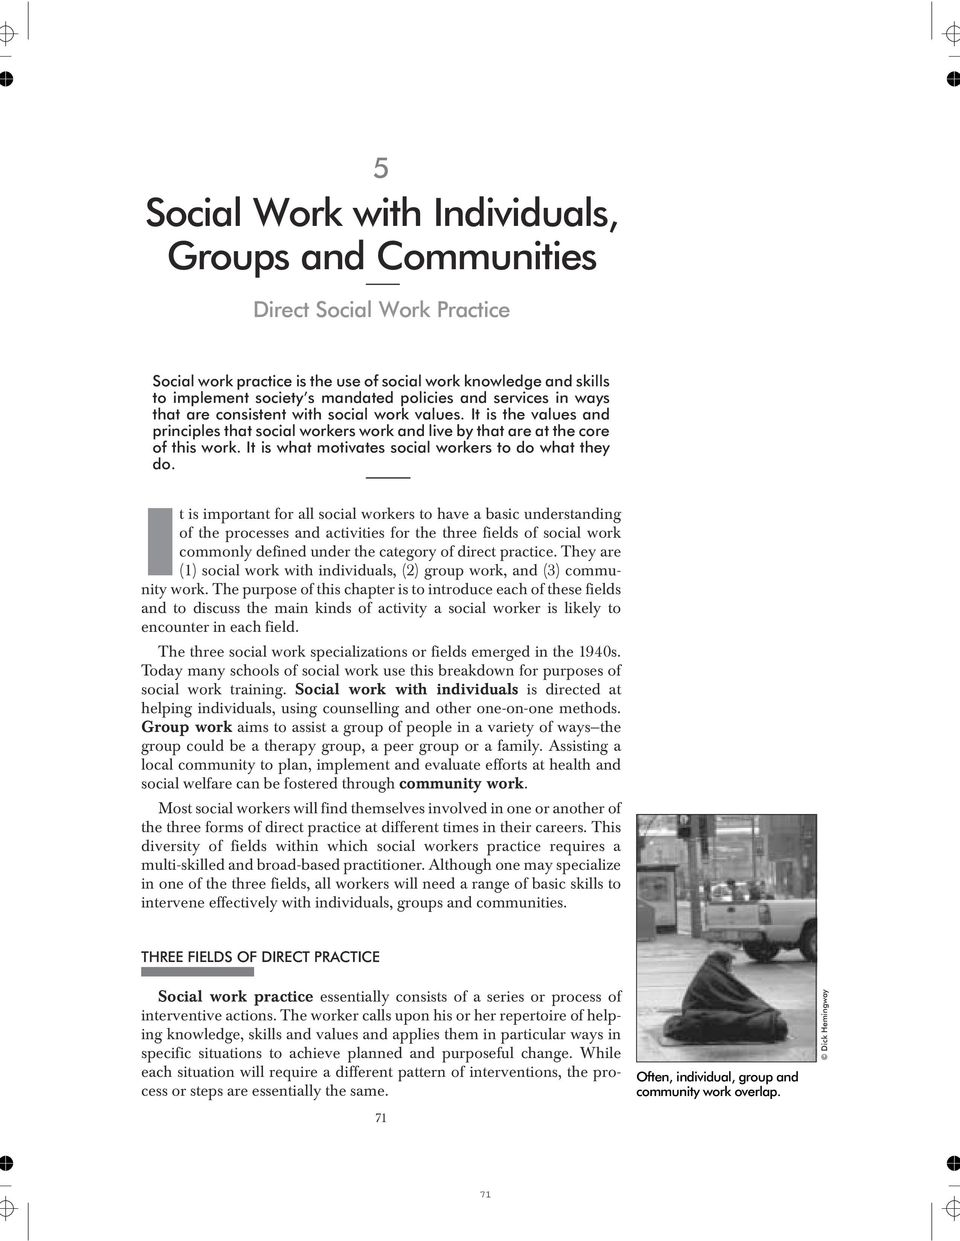 It is what motivates social workers to do what they do.